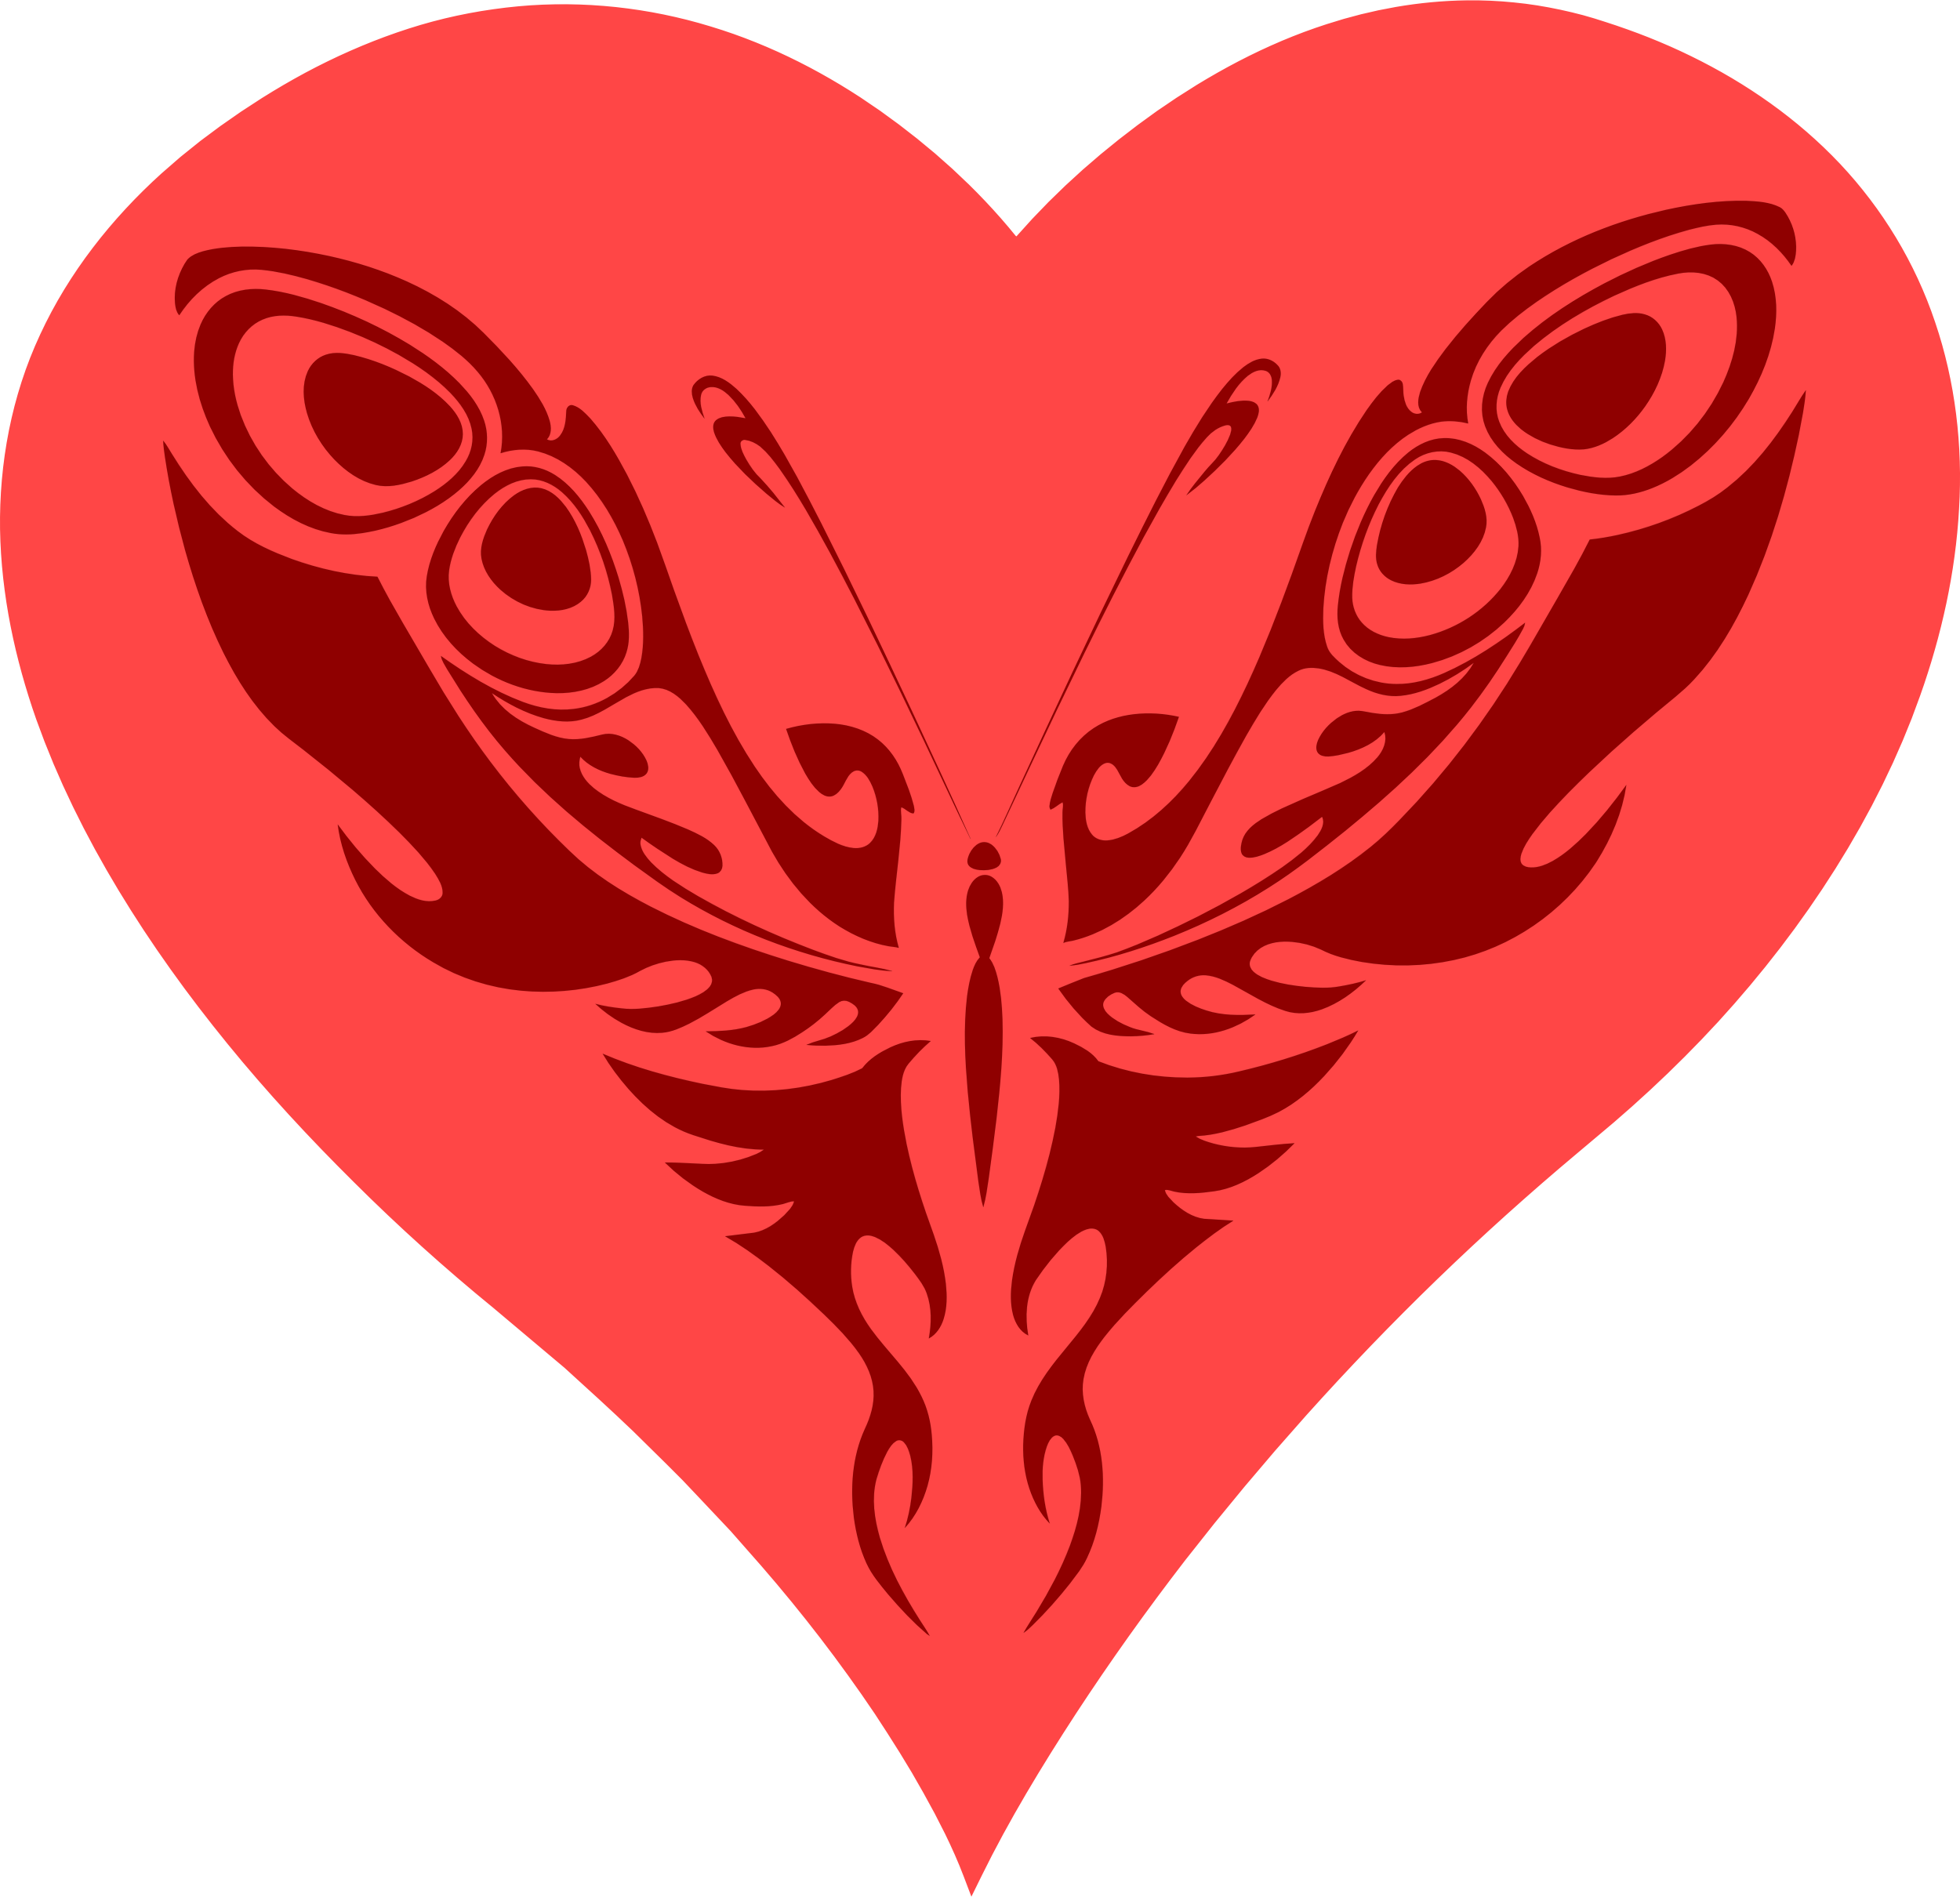 Heart bclipart butterflyheartbclipart animals. Hearts clipart butterfly